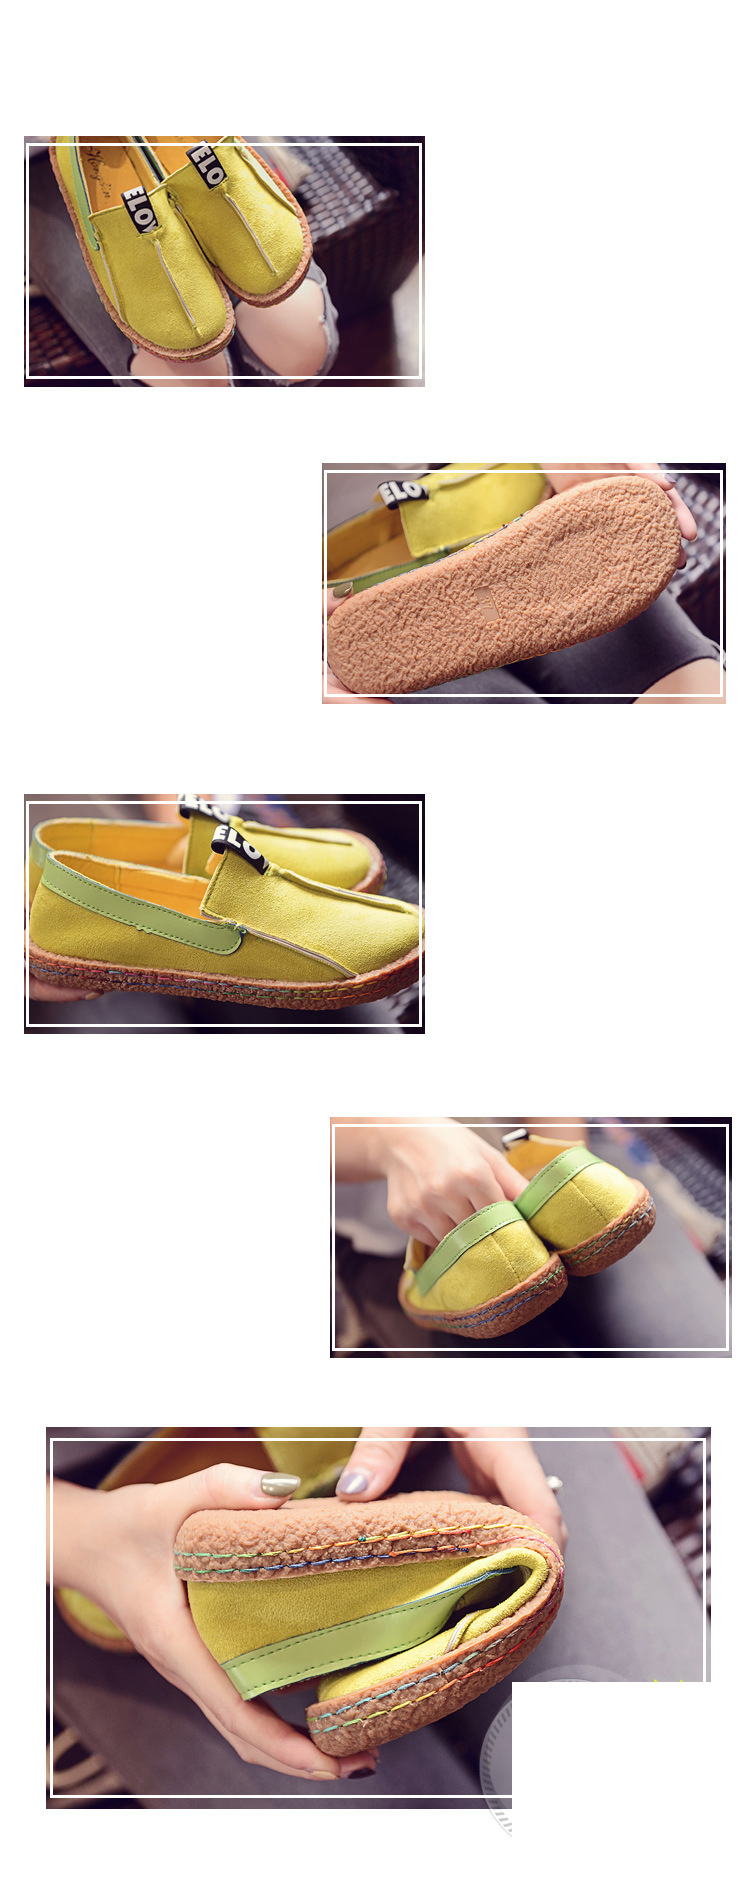 Slip On Women Loafers Fashion Summer Women Flats Plush Size Moccasins Round Toe Flock Casual Shoes 2019 Zapatos Mujer VT226 (6)